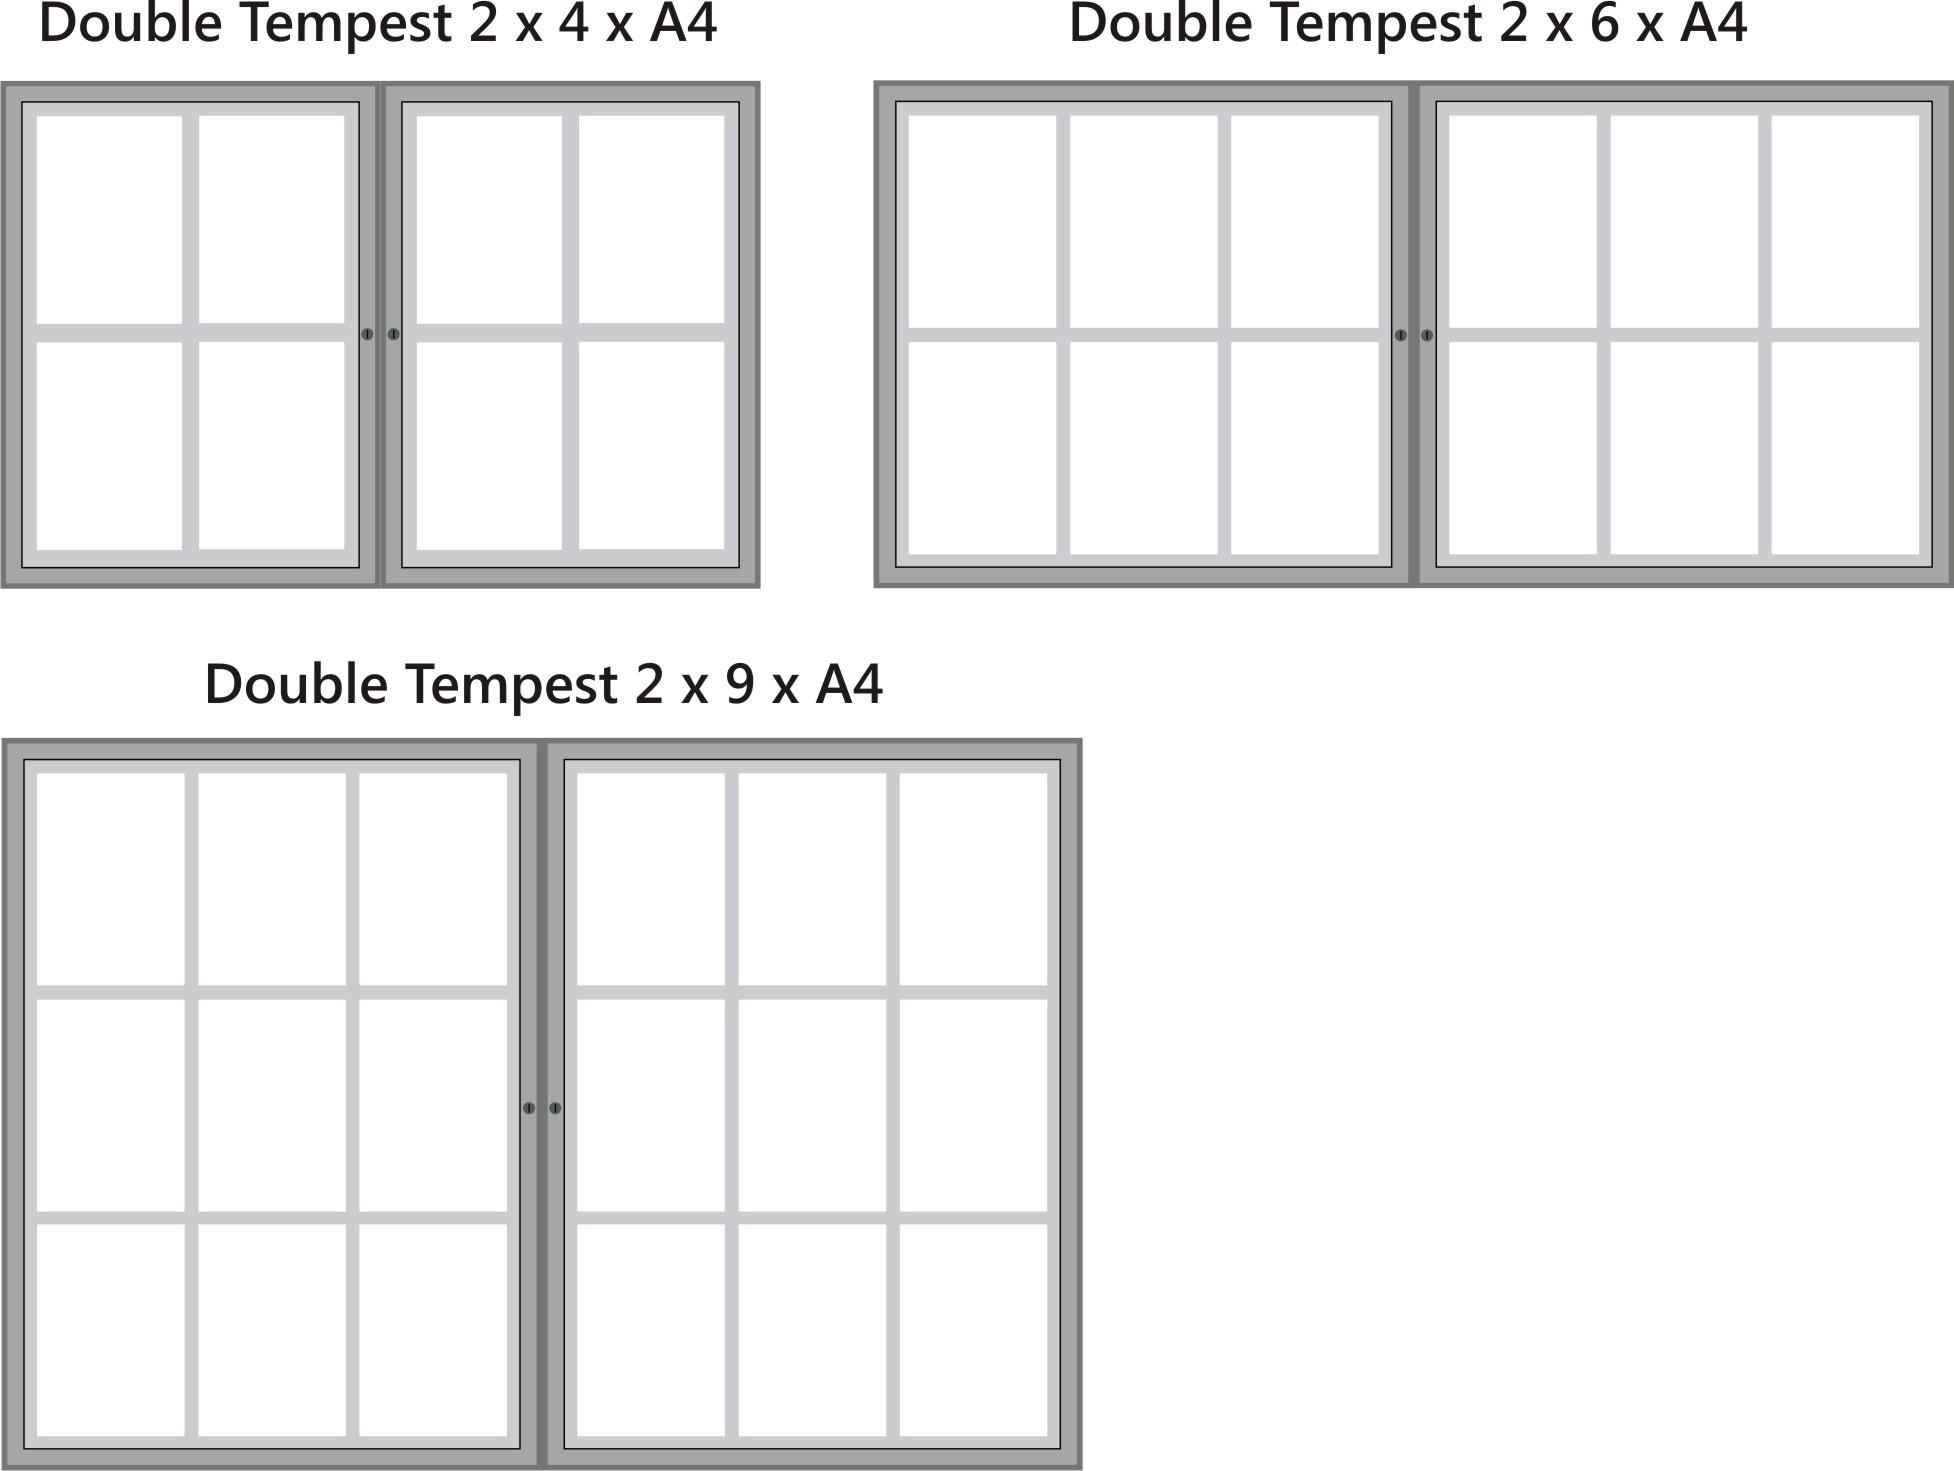 Double Tempest Notice Boards